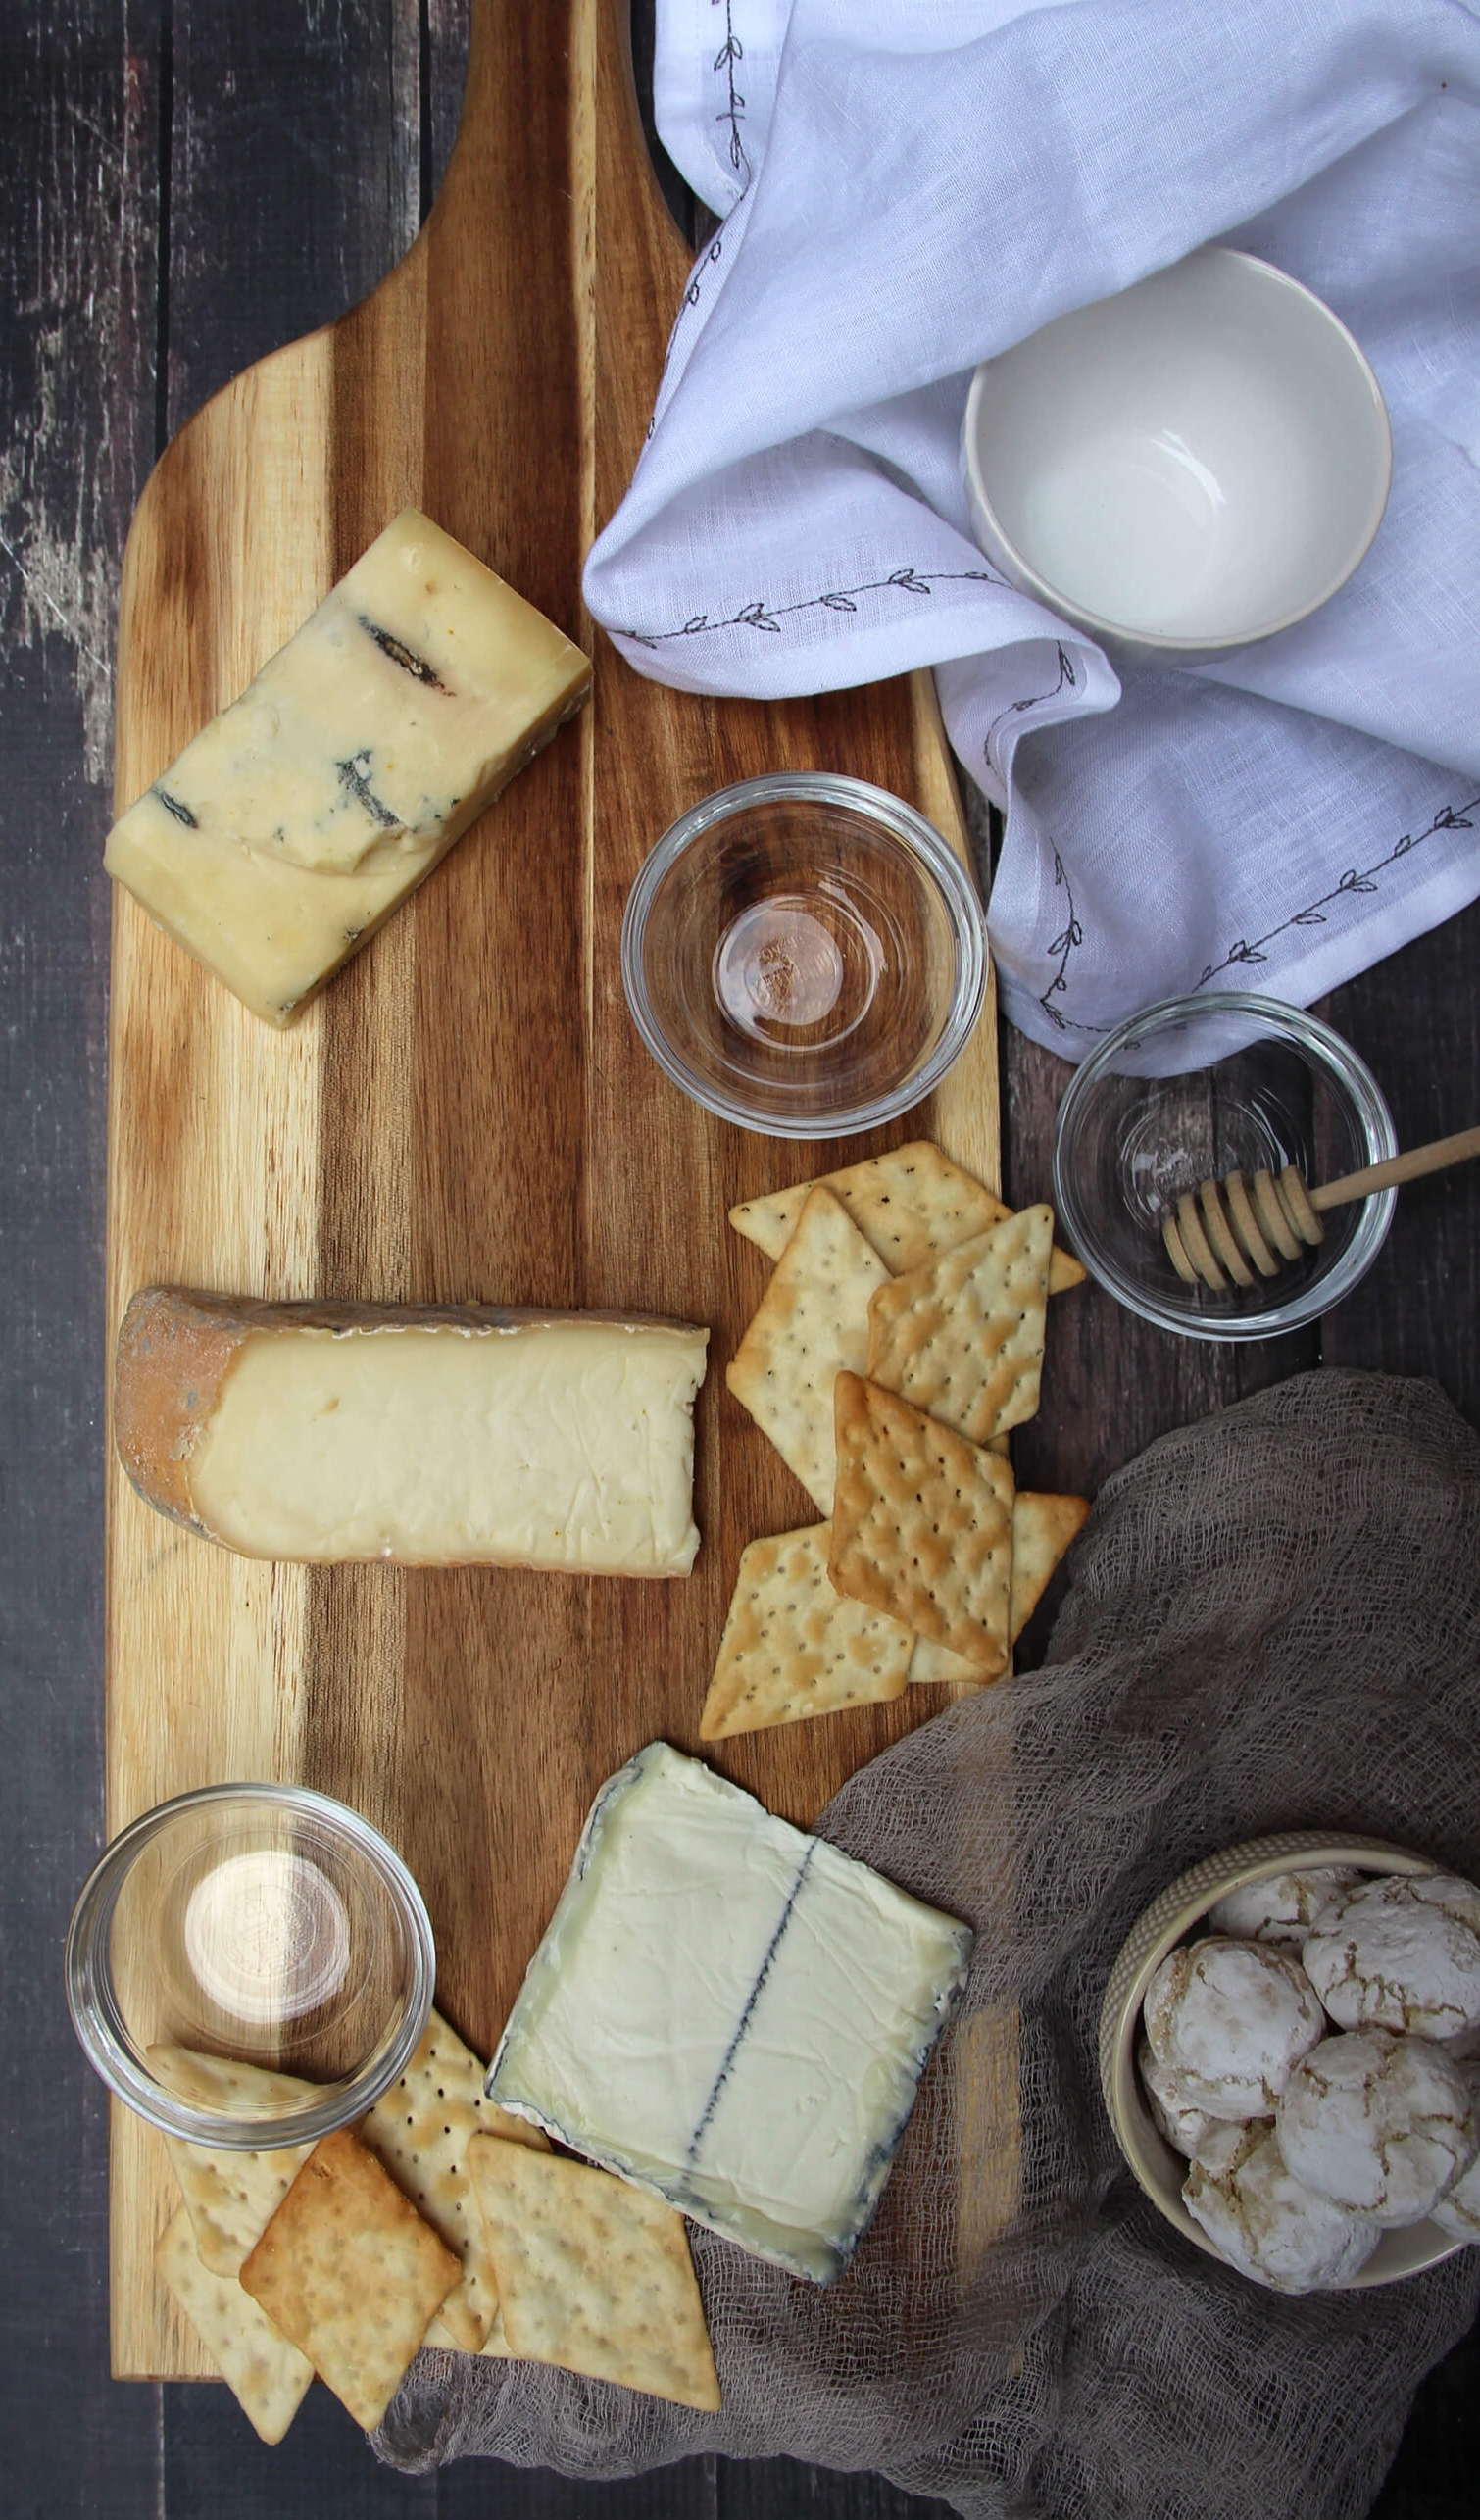 How-To Build A Passover Cheeseboard